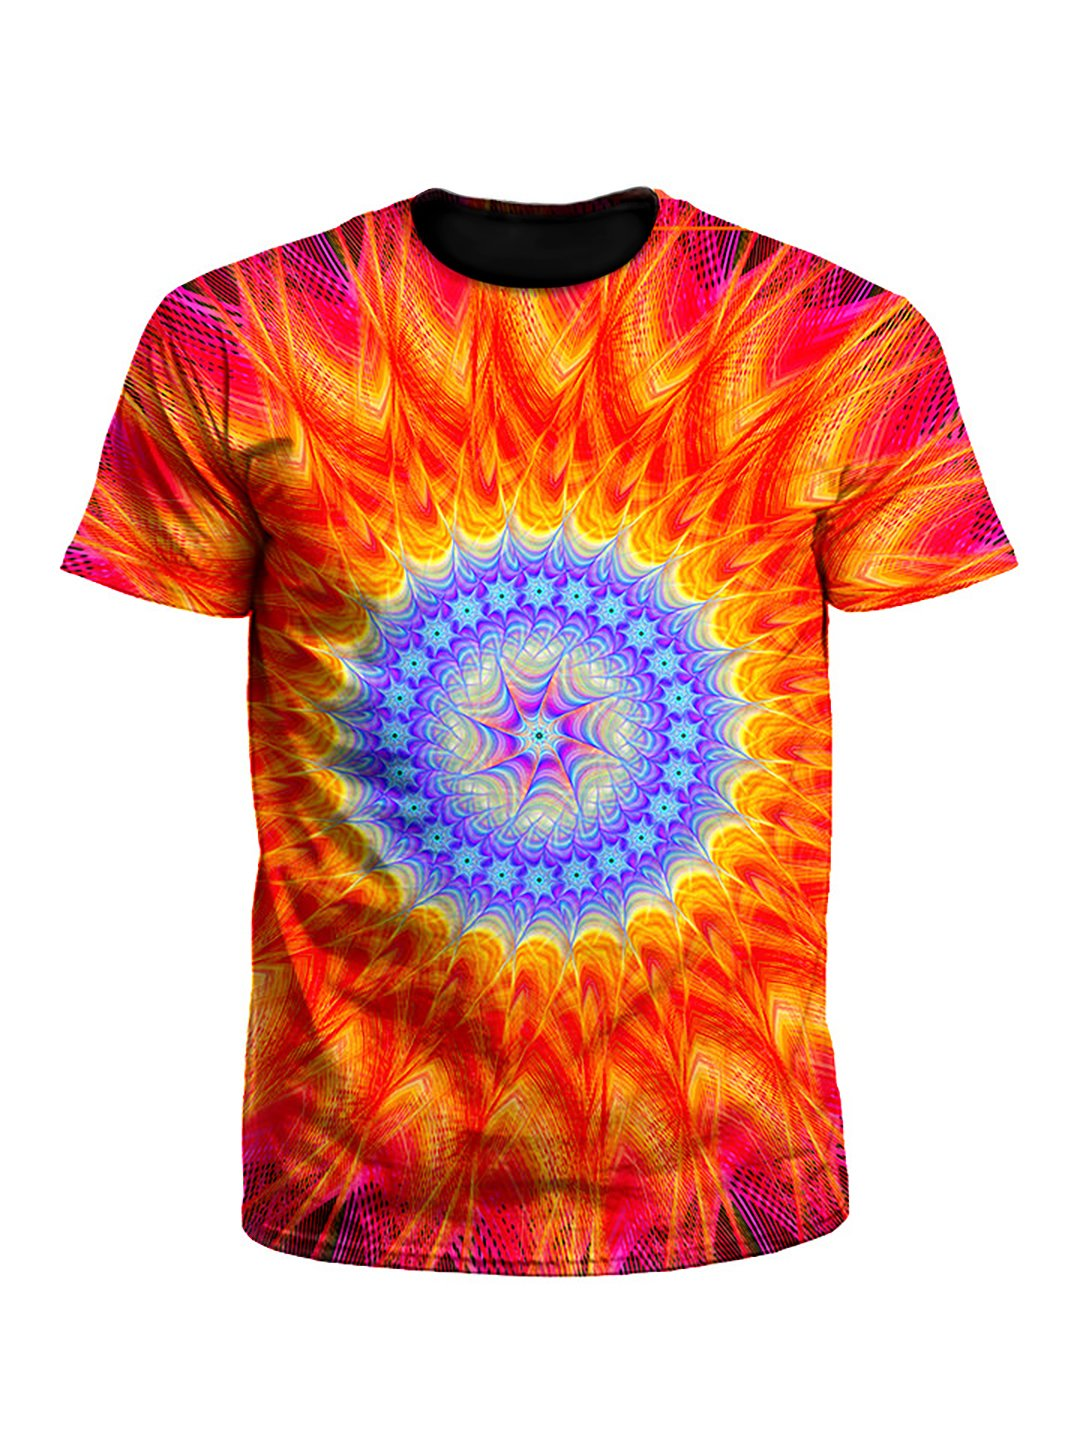 Super Saiyan Fire & Ice Mandala Unisex T-Shirt